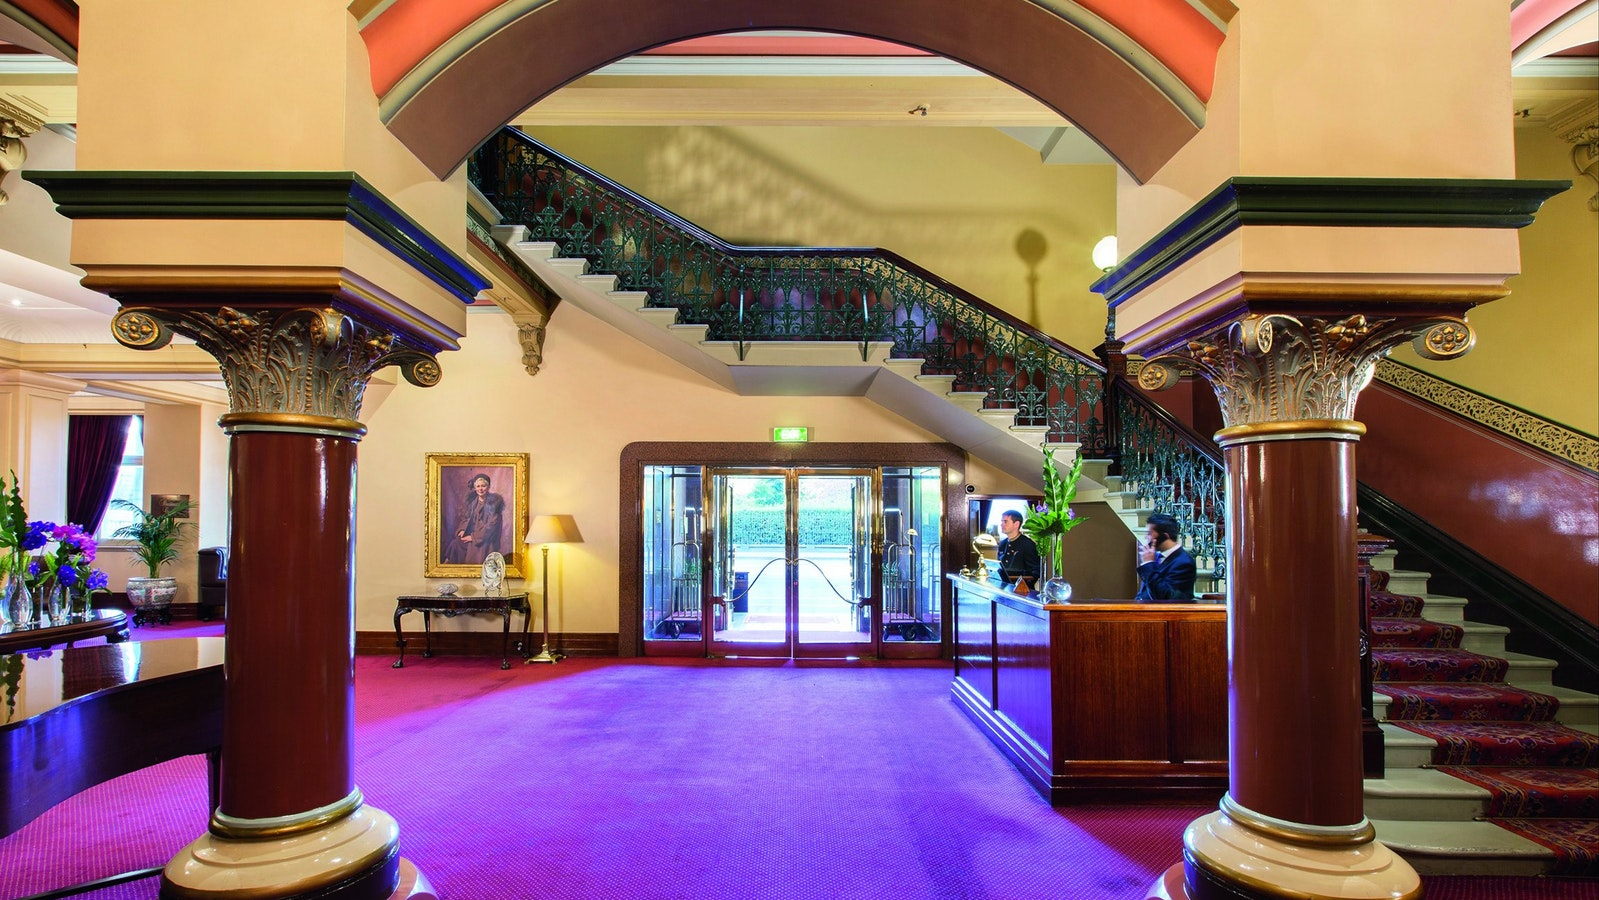 The Hotel Windsor Concierge Desk and Grand Staircase